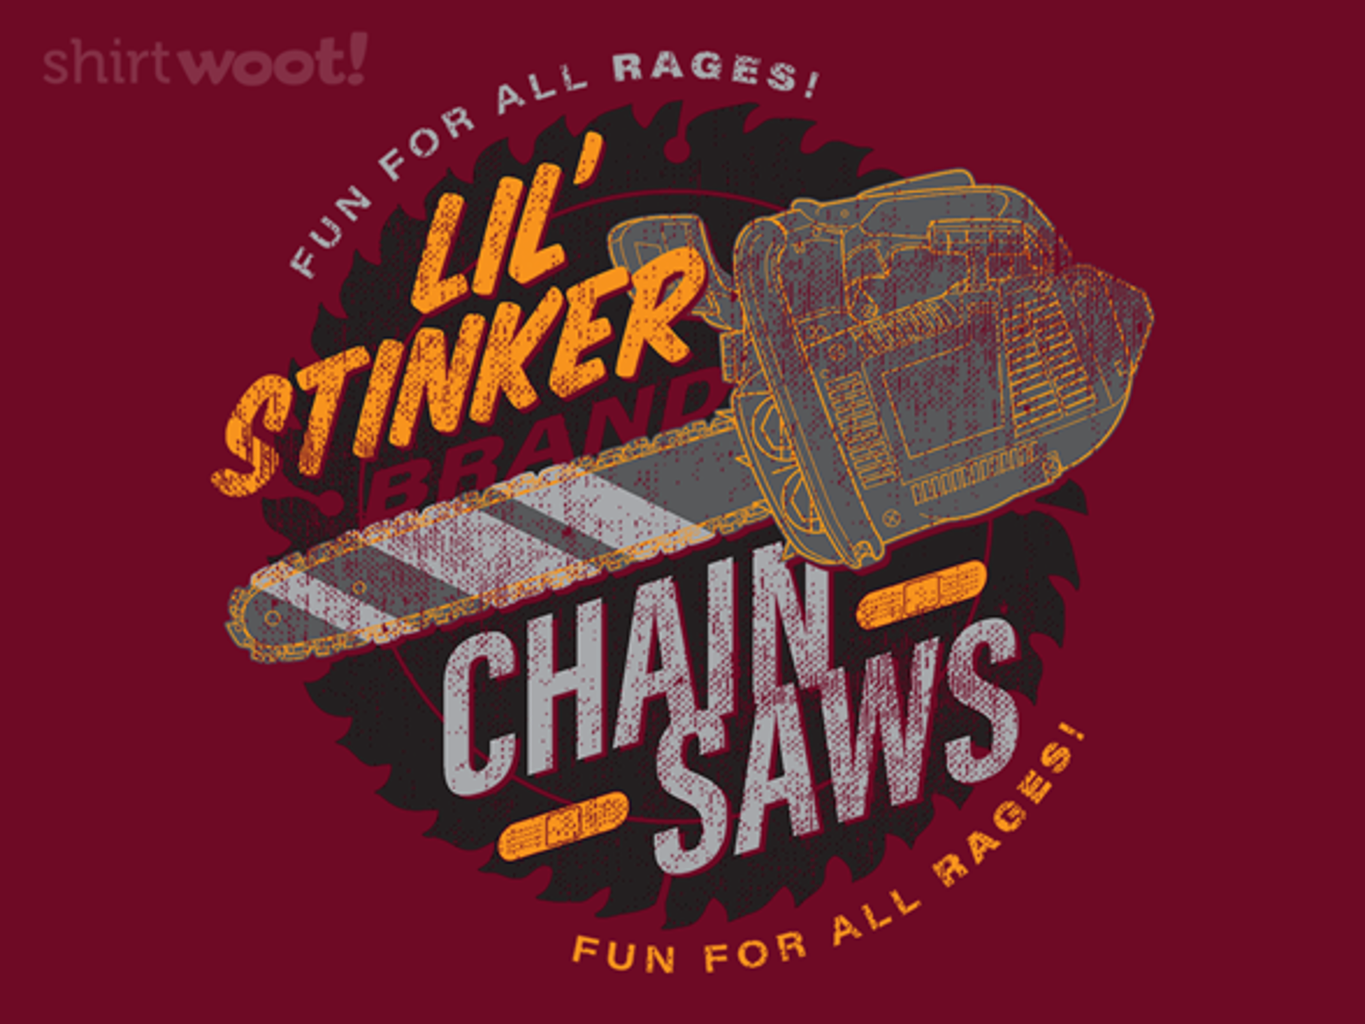 Woot!: Lil' Stinker Chainsaws